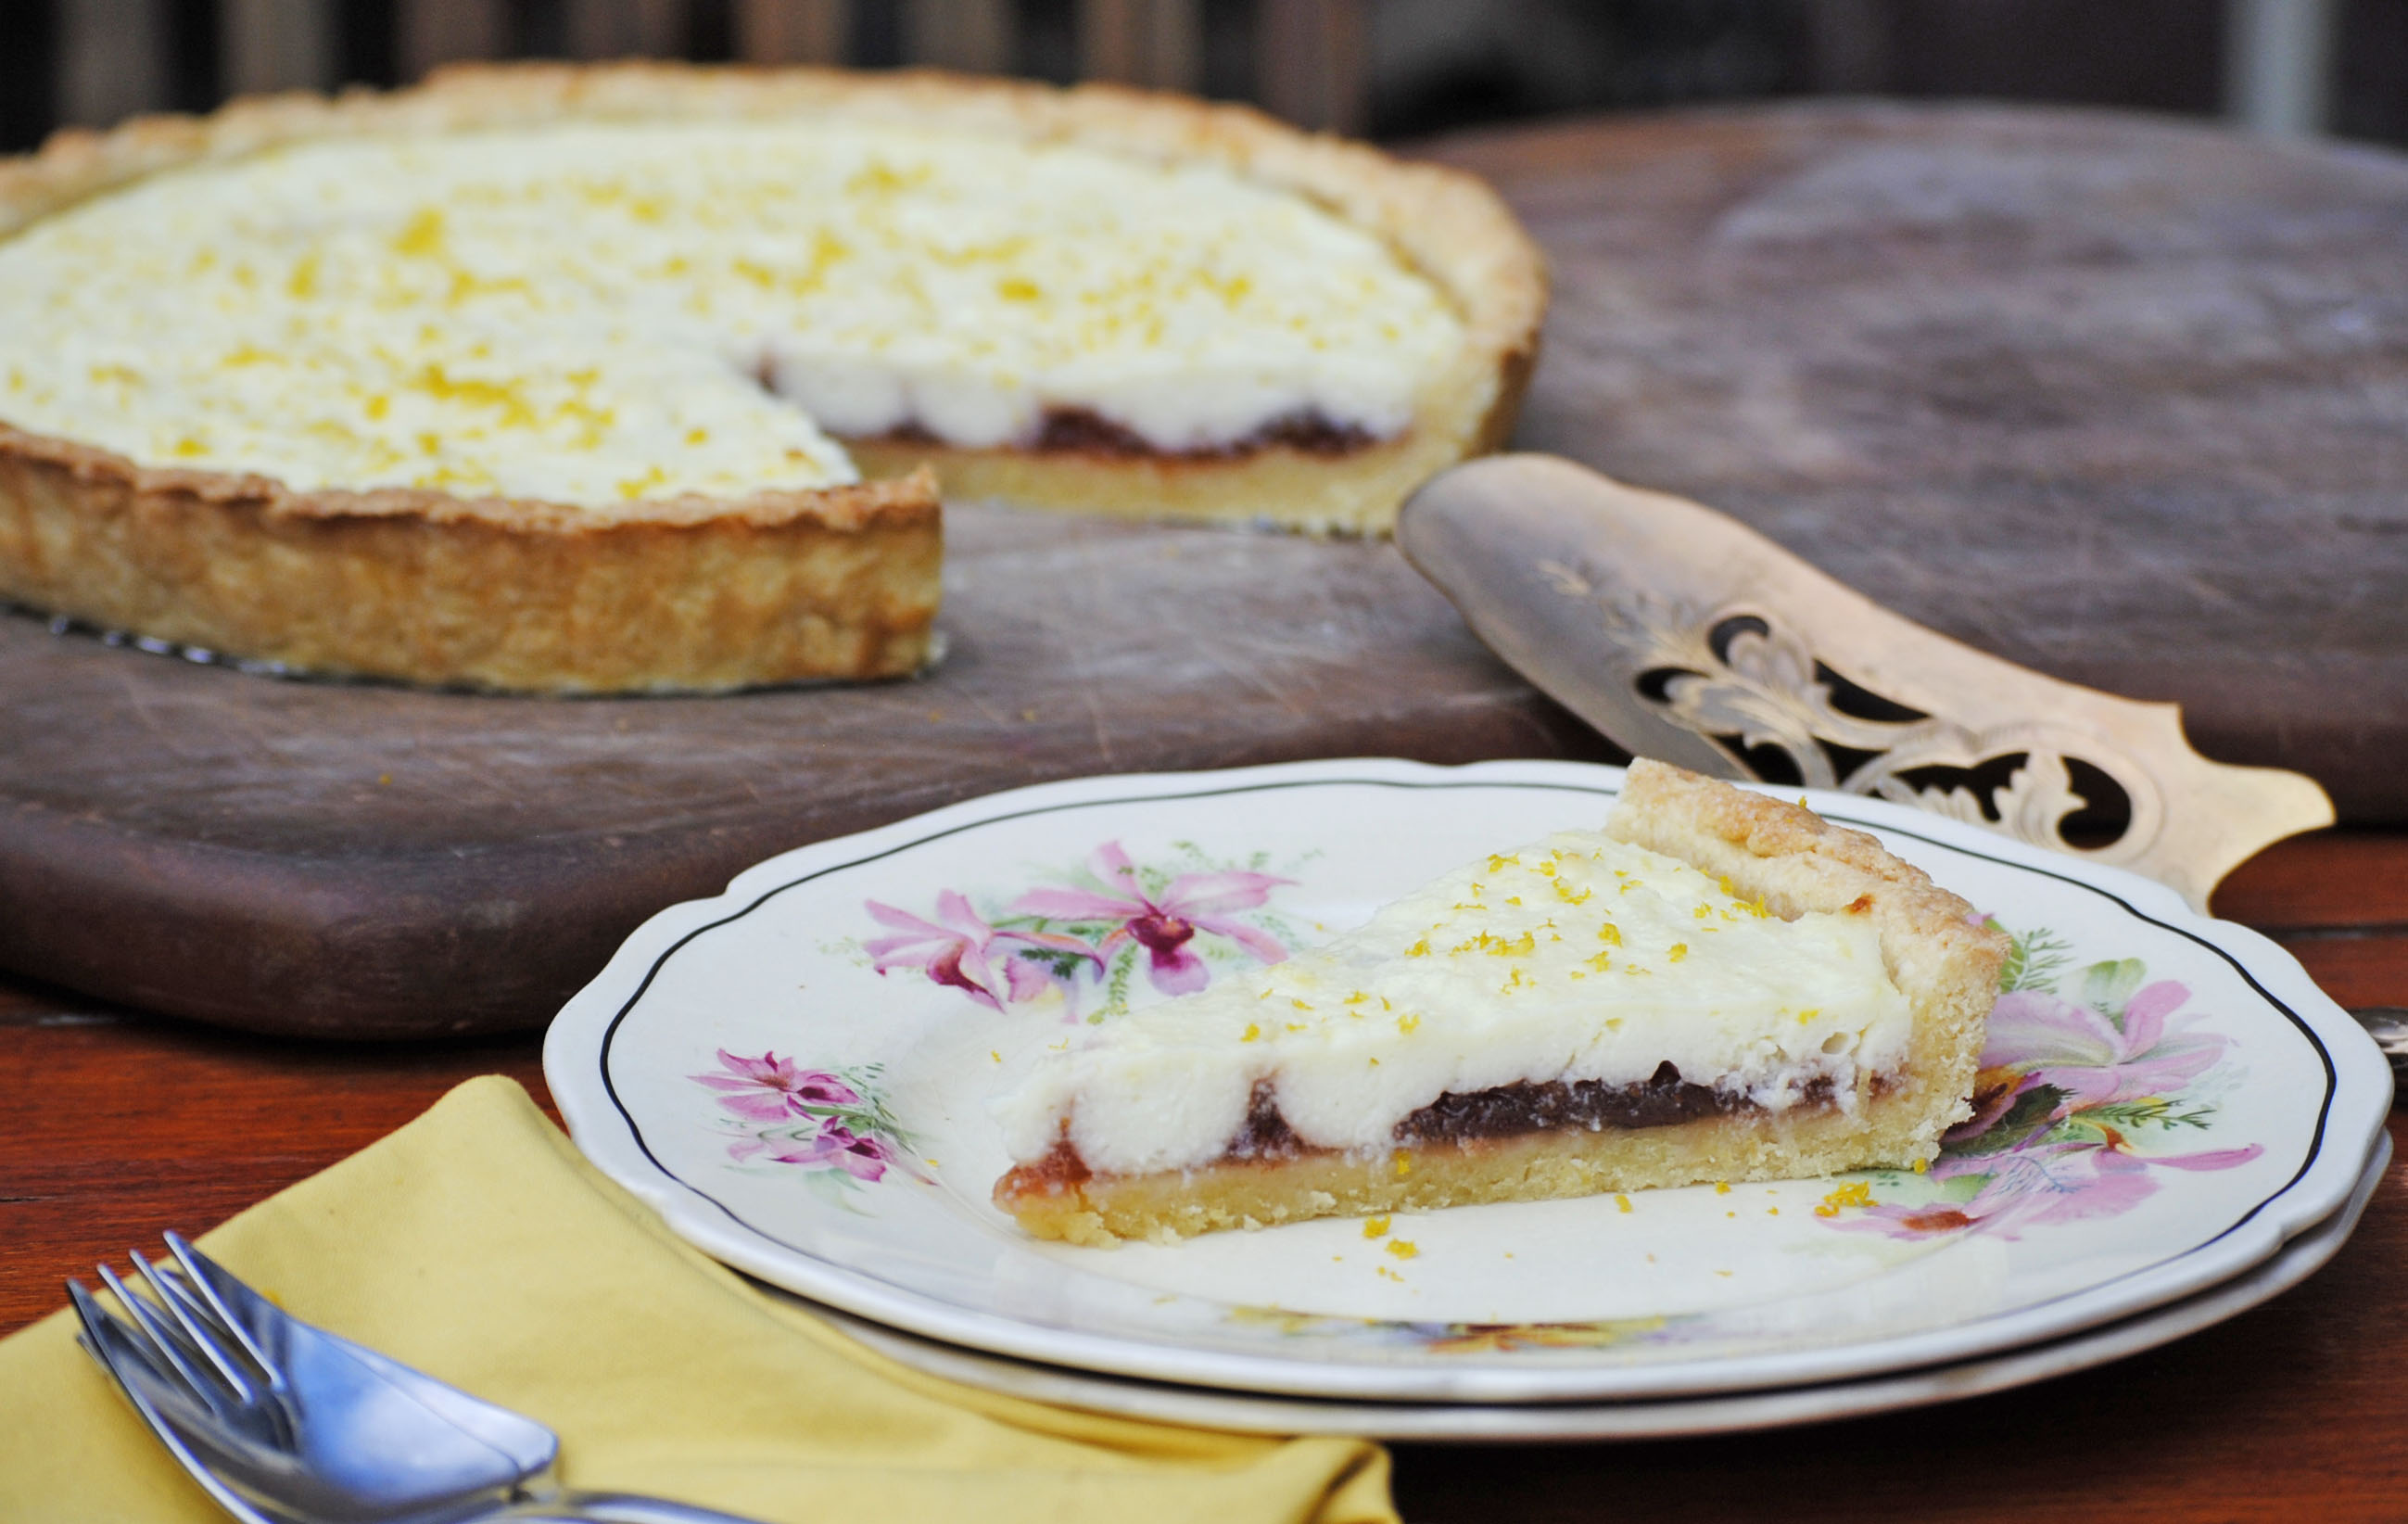 Lemon ricotta and orange marmalade tart | italy on my mind